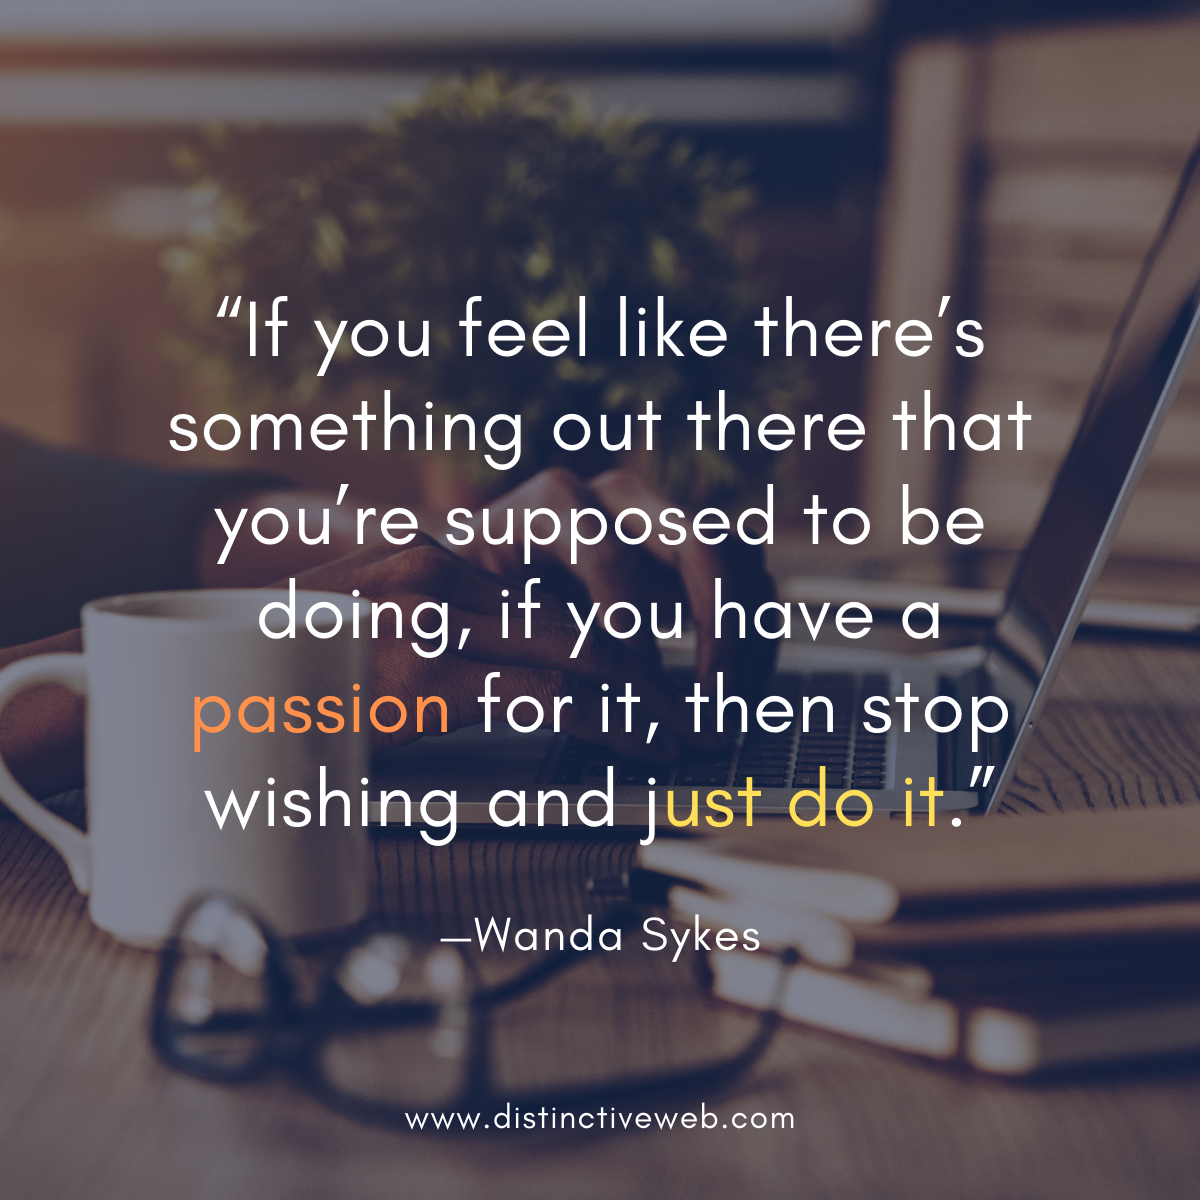 """""""If you feel like there's something out there that you're supposed to be doing, if you have a passion for it, then stop wishing and just do it."""" —Wanda Sykes"""